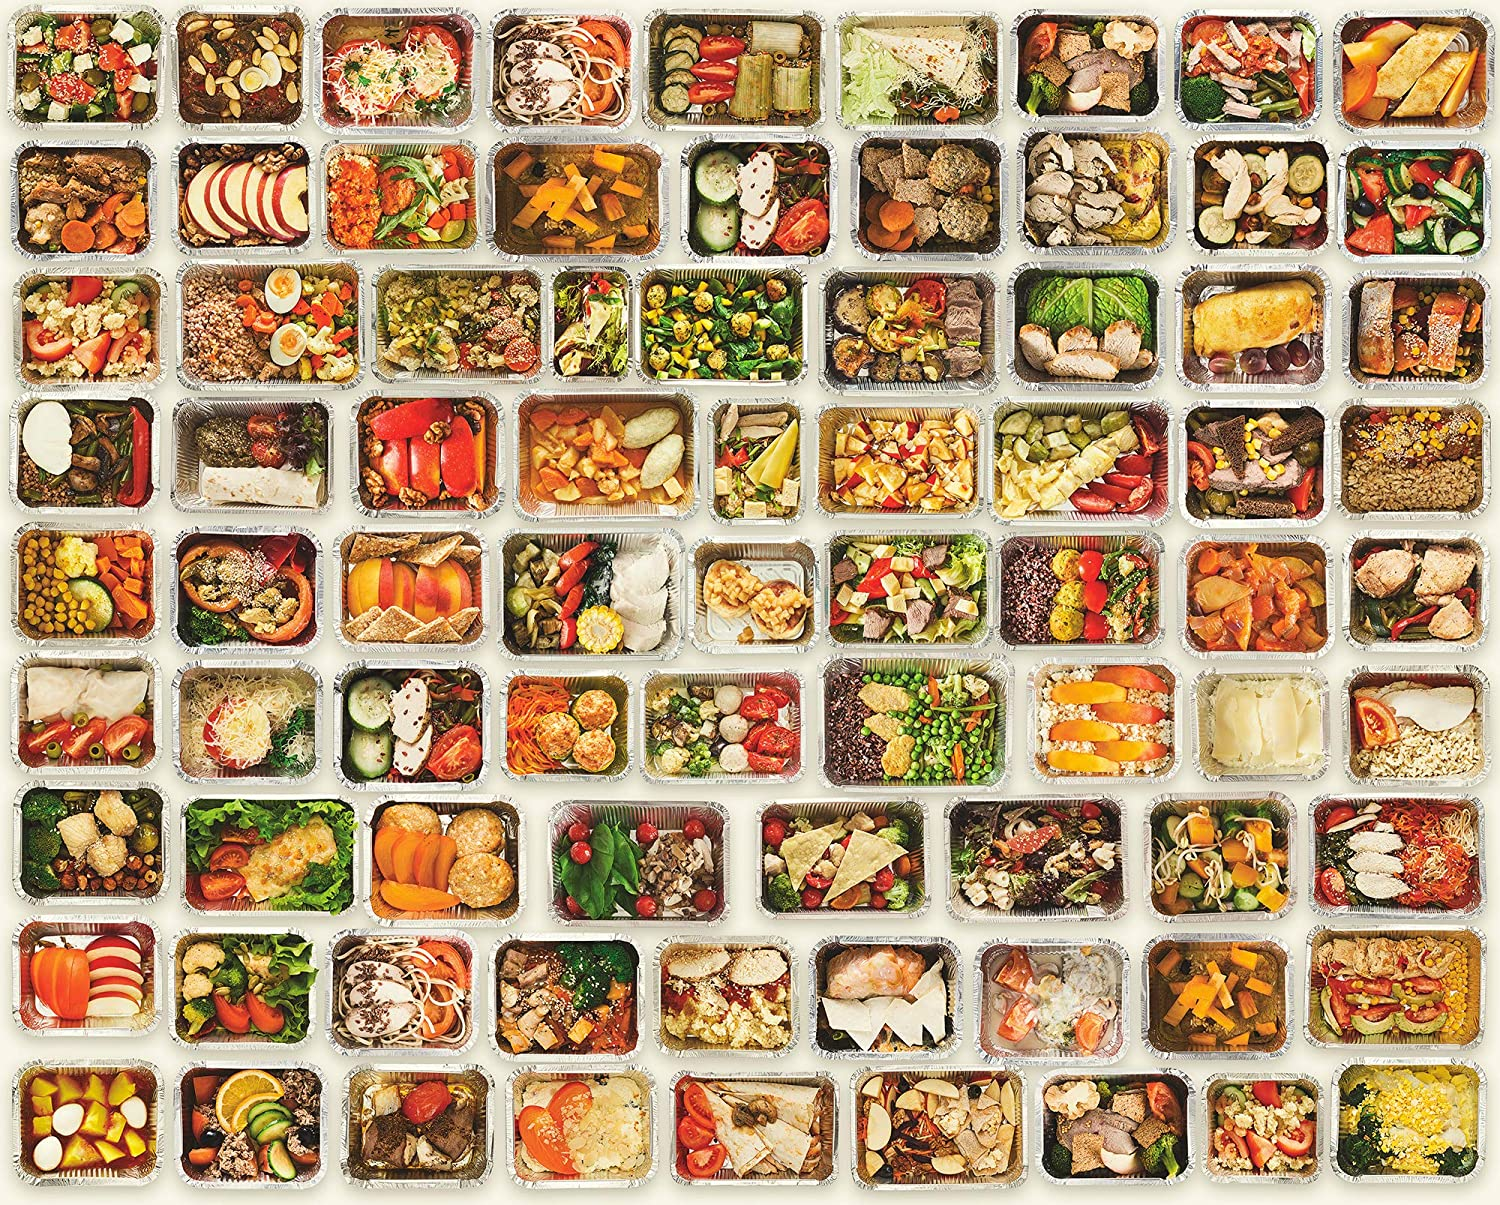 Jigsaw Puzzles 1000 Pieces for Adults Kids Family, Prjoyint Cool Challenging Food Puzzles Fun Indoor Activity Large